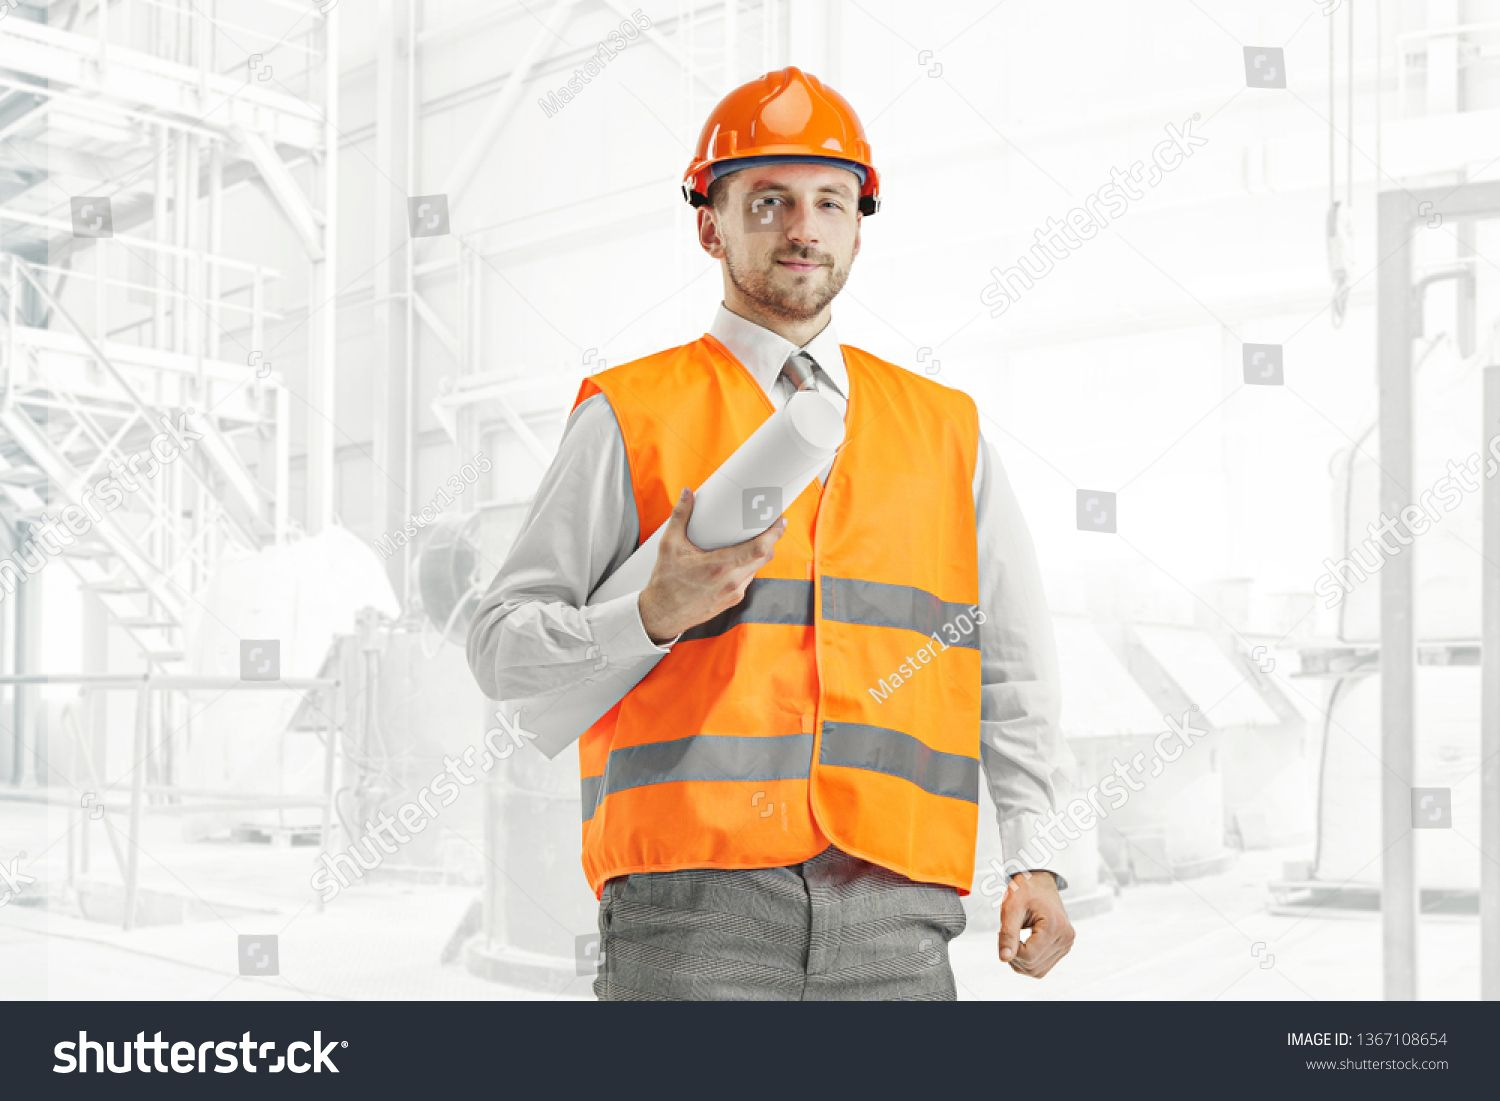 The builder in a construction vest and orange helmet